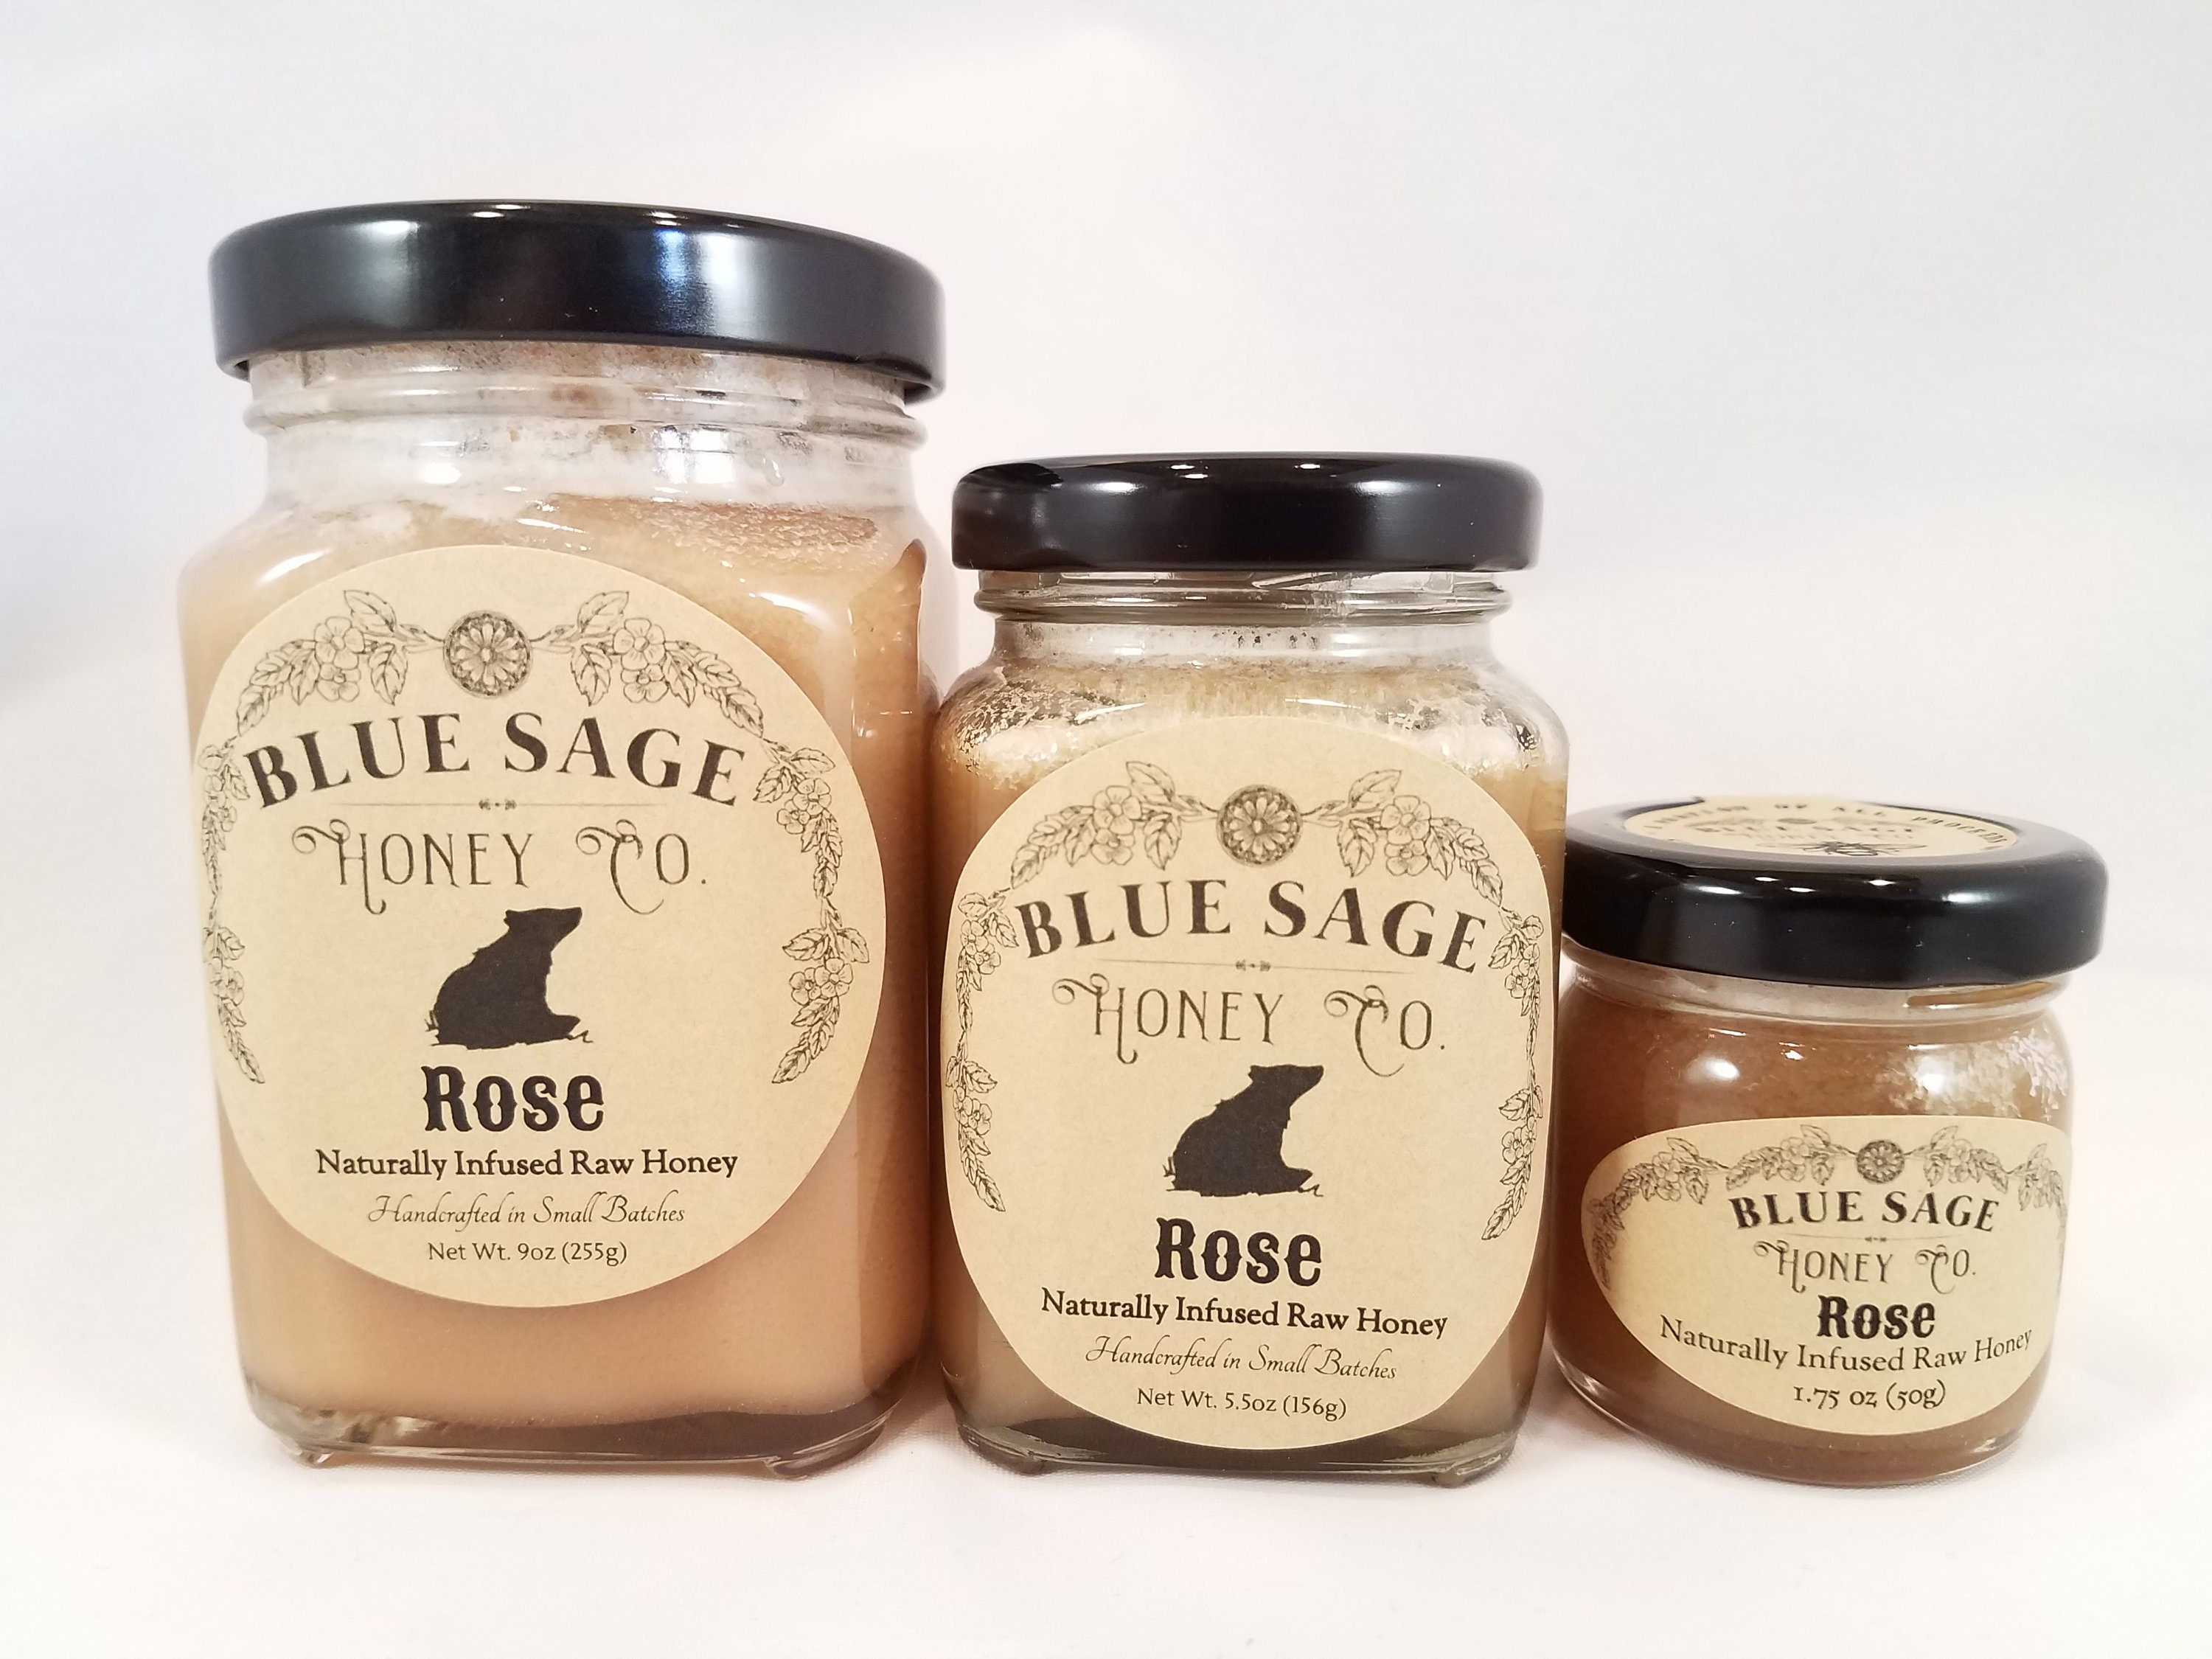 Rose Petal Infused Raw Honey, Romantic Gifts, Summer Treat, Romantic  Edibles, Elegant, Gift for Her, Welcome Home Gift, Natural Sweetner